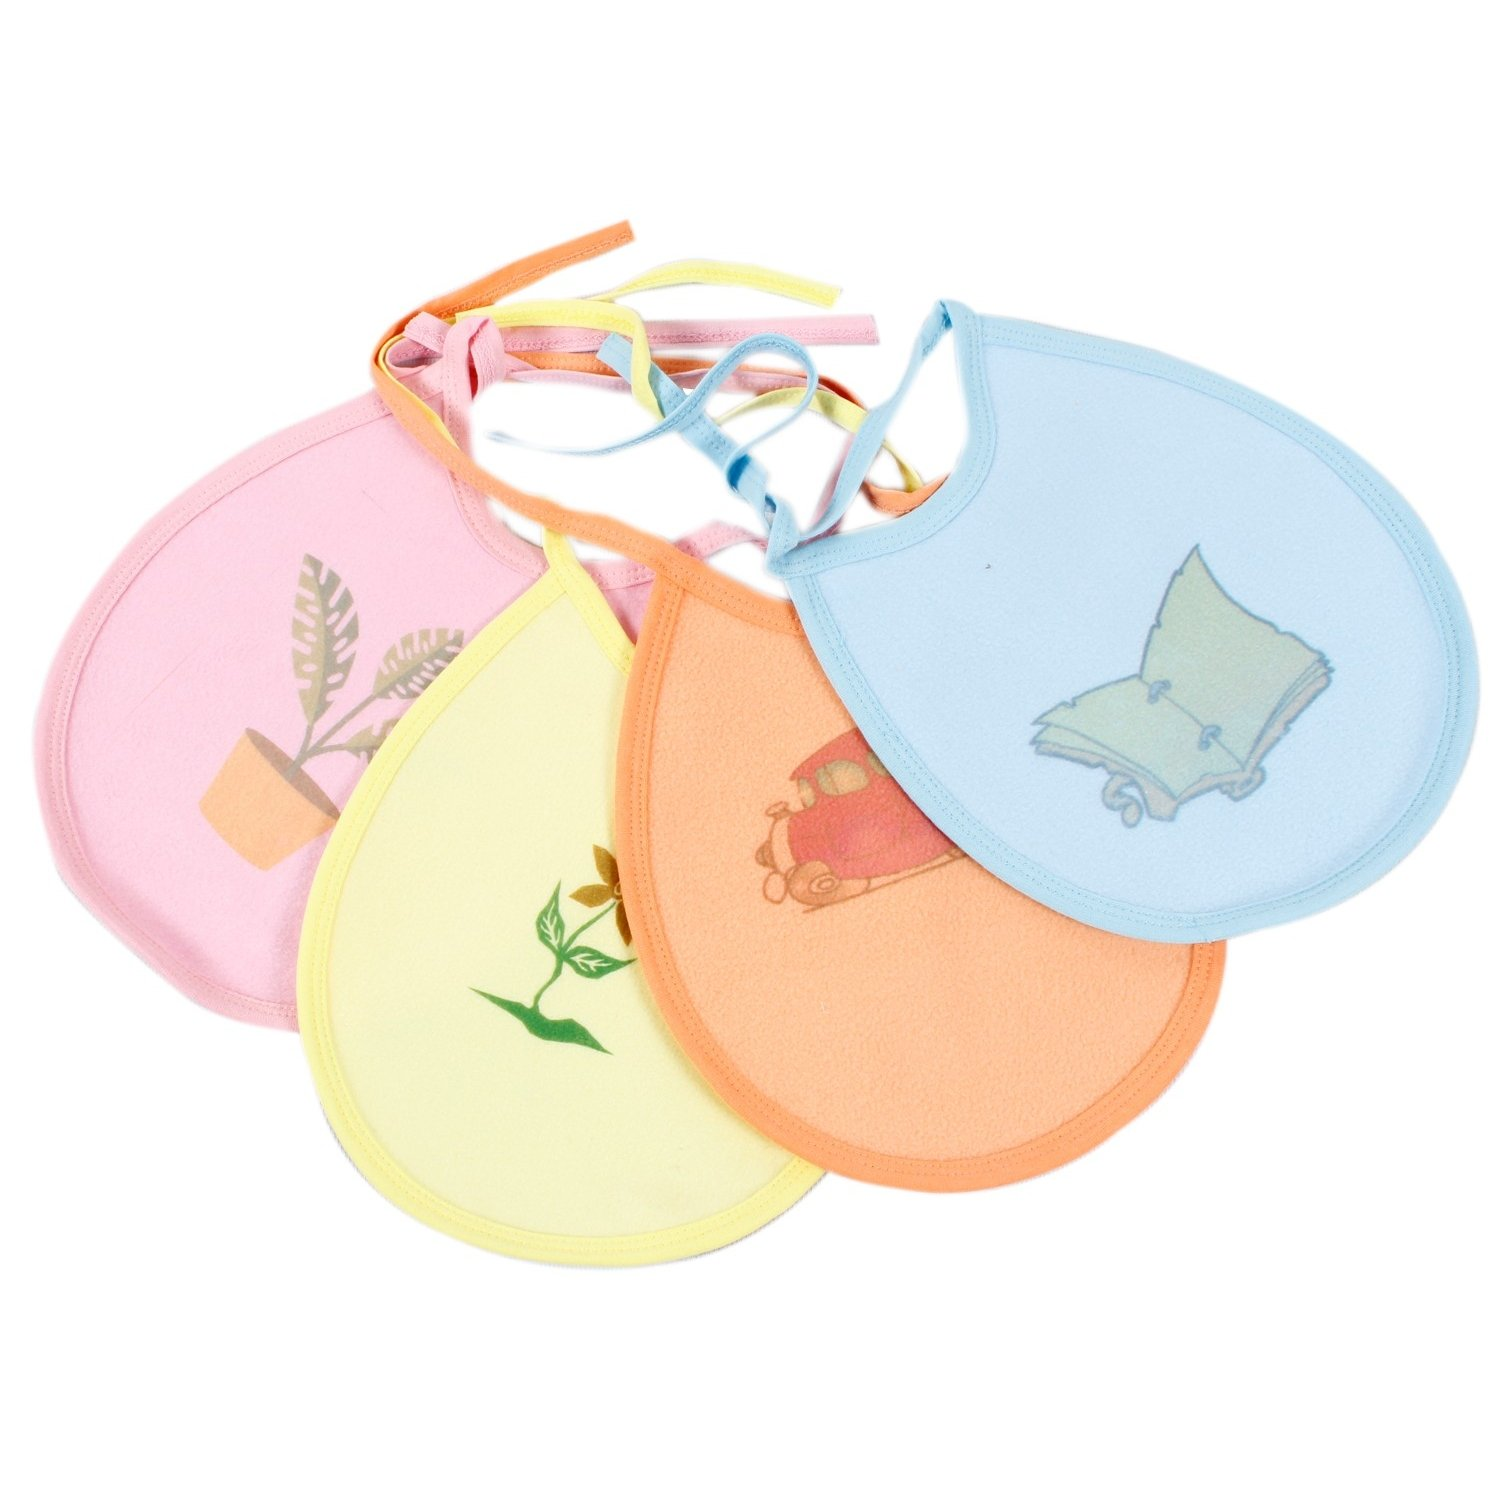 Baby Feeding Bottles Buy Online At Best Prices Pigeon Silicone Pacifier Step 2 Isi Quick Dry Printed Bibs 4pcs